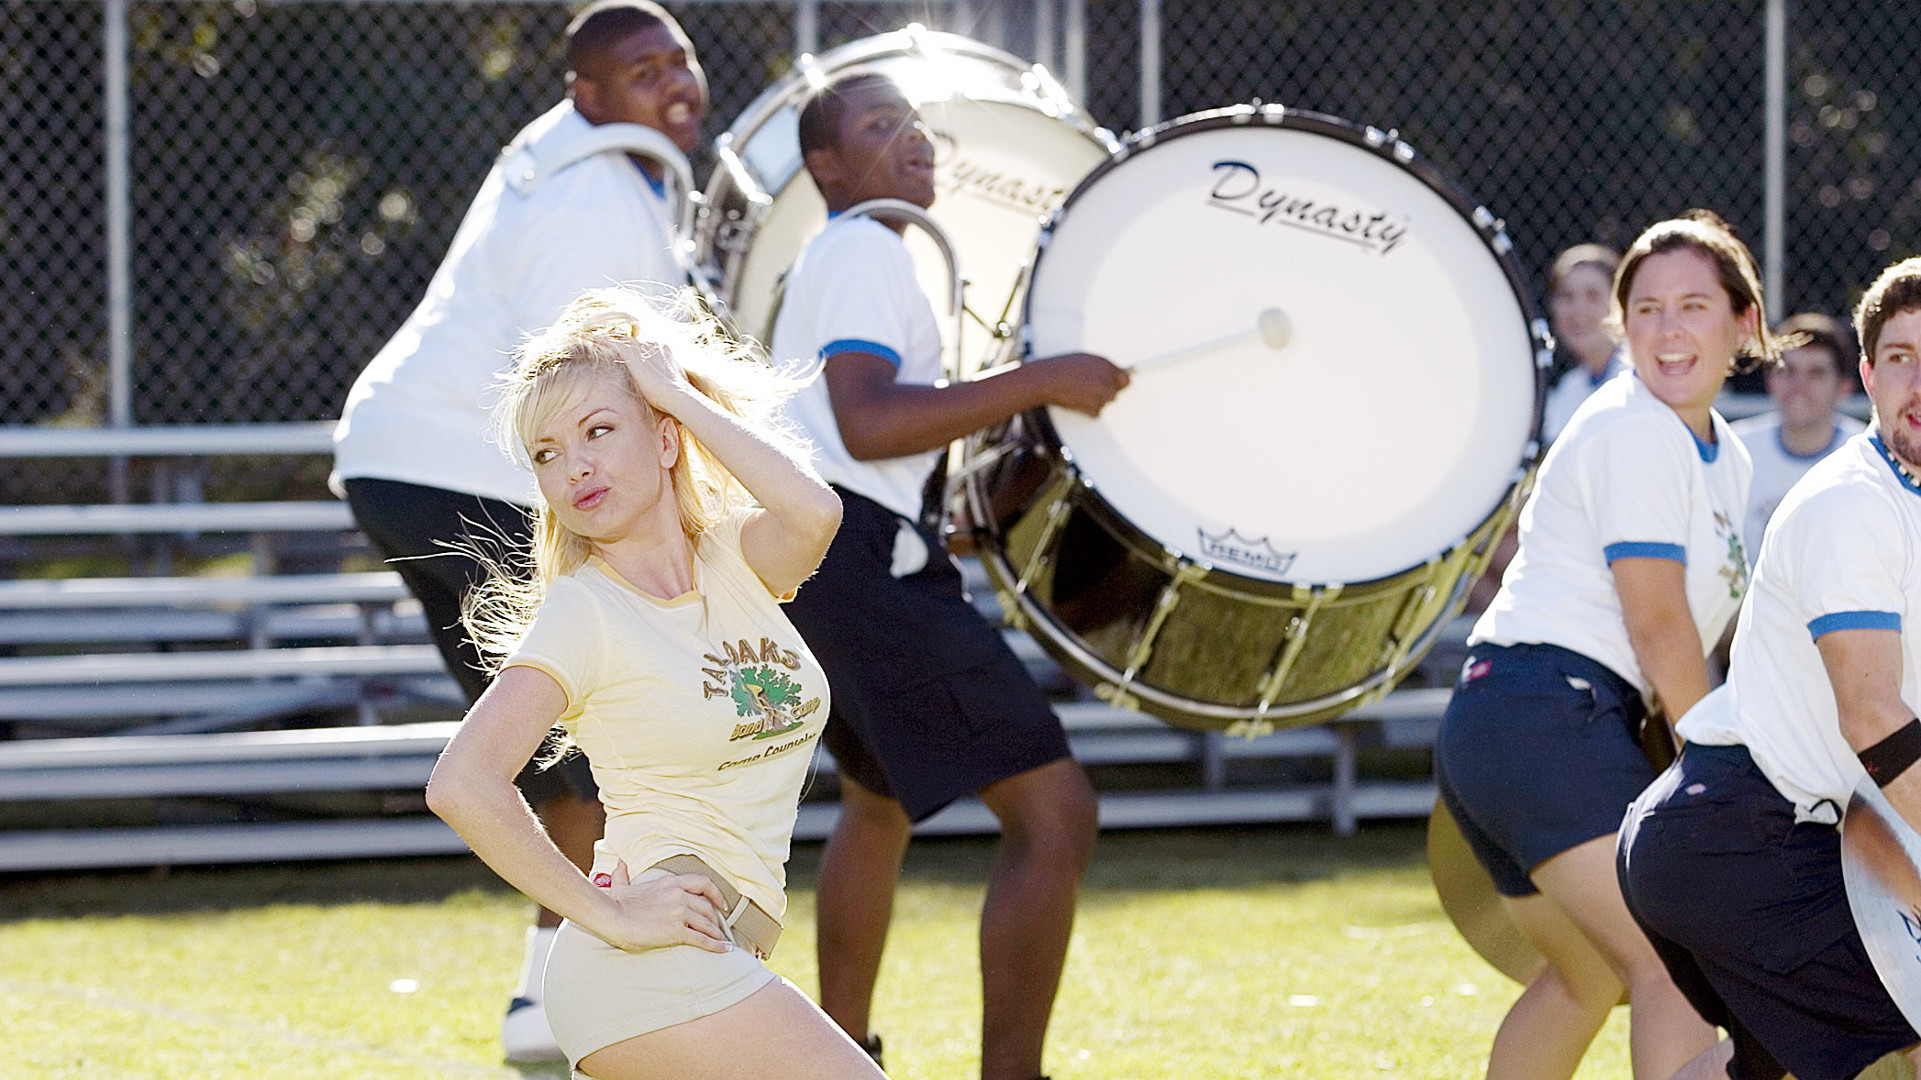 American Pie Band Camp Unrated Scenes 10 toe-tapping marching band moments – ifc